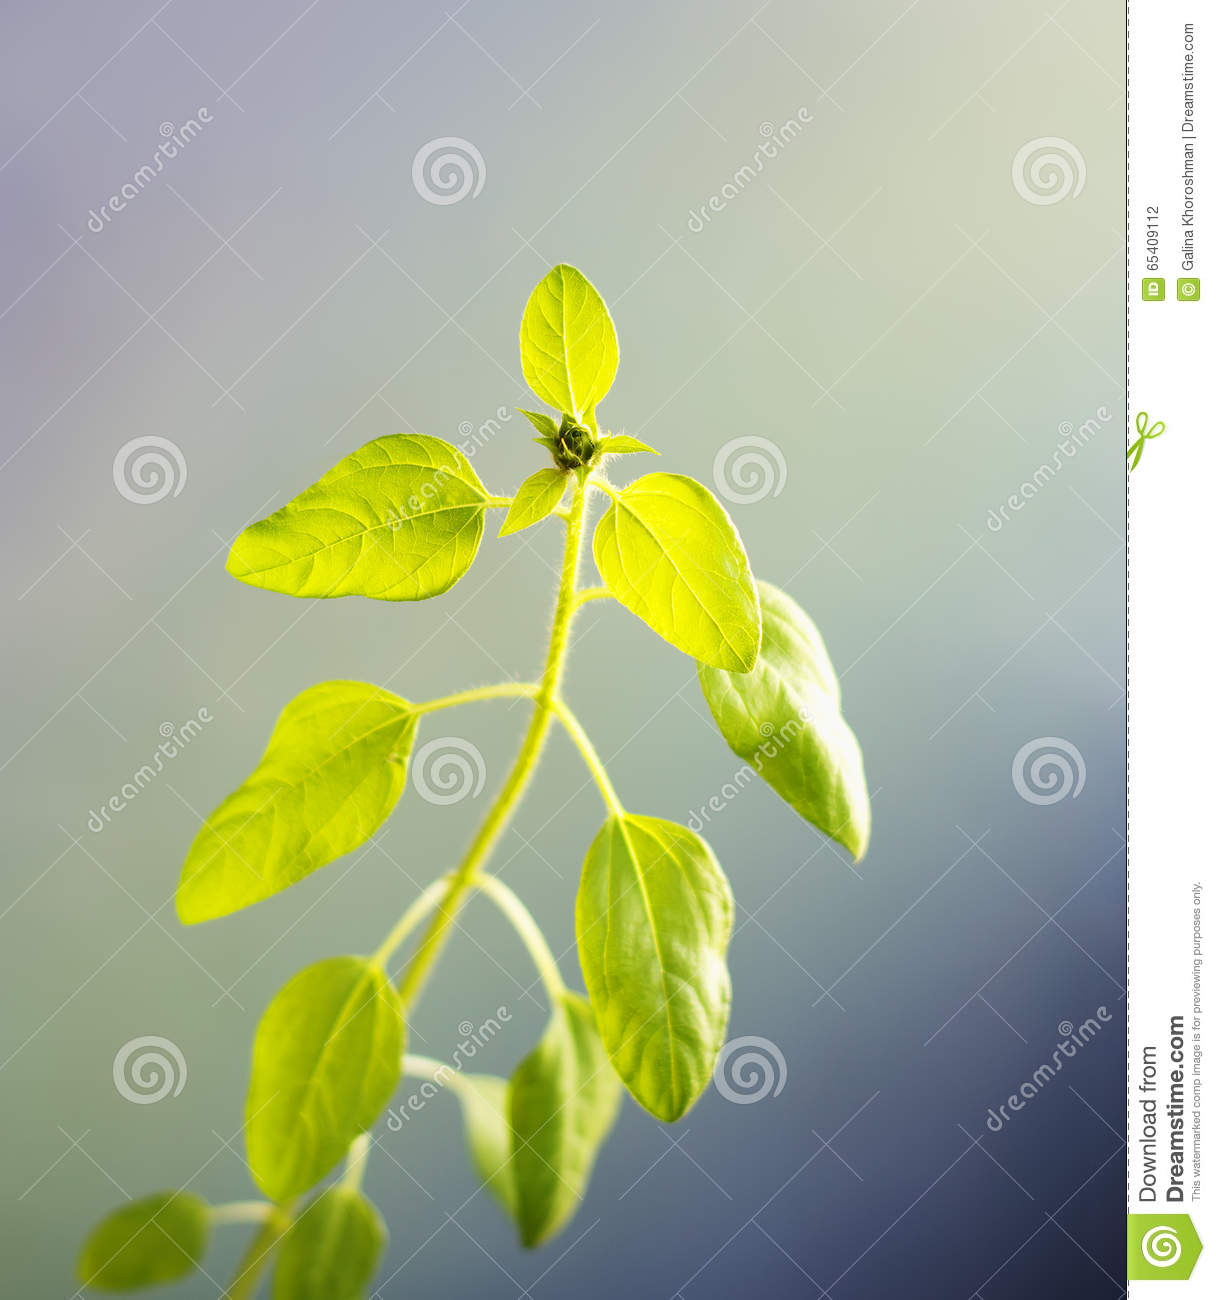 Sunflower Sprout In Opposite Light Closeup Stock Photo - Image of ...